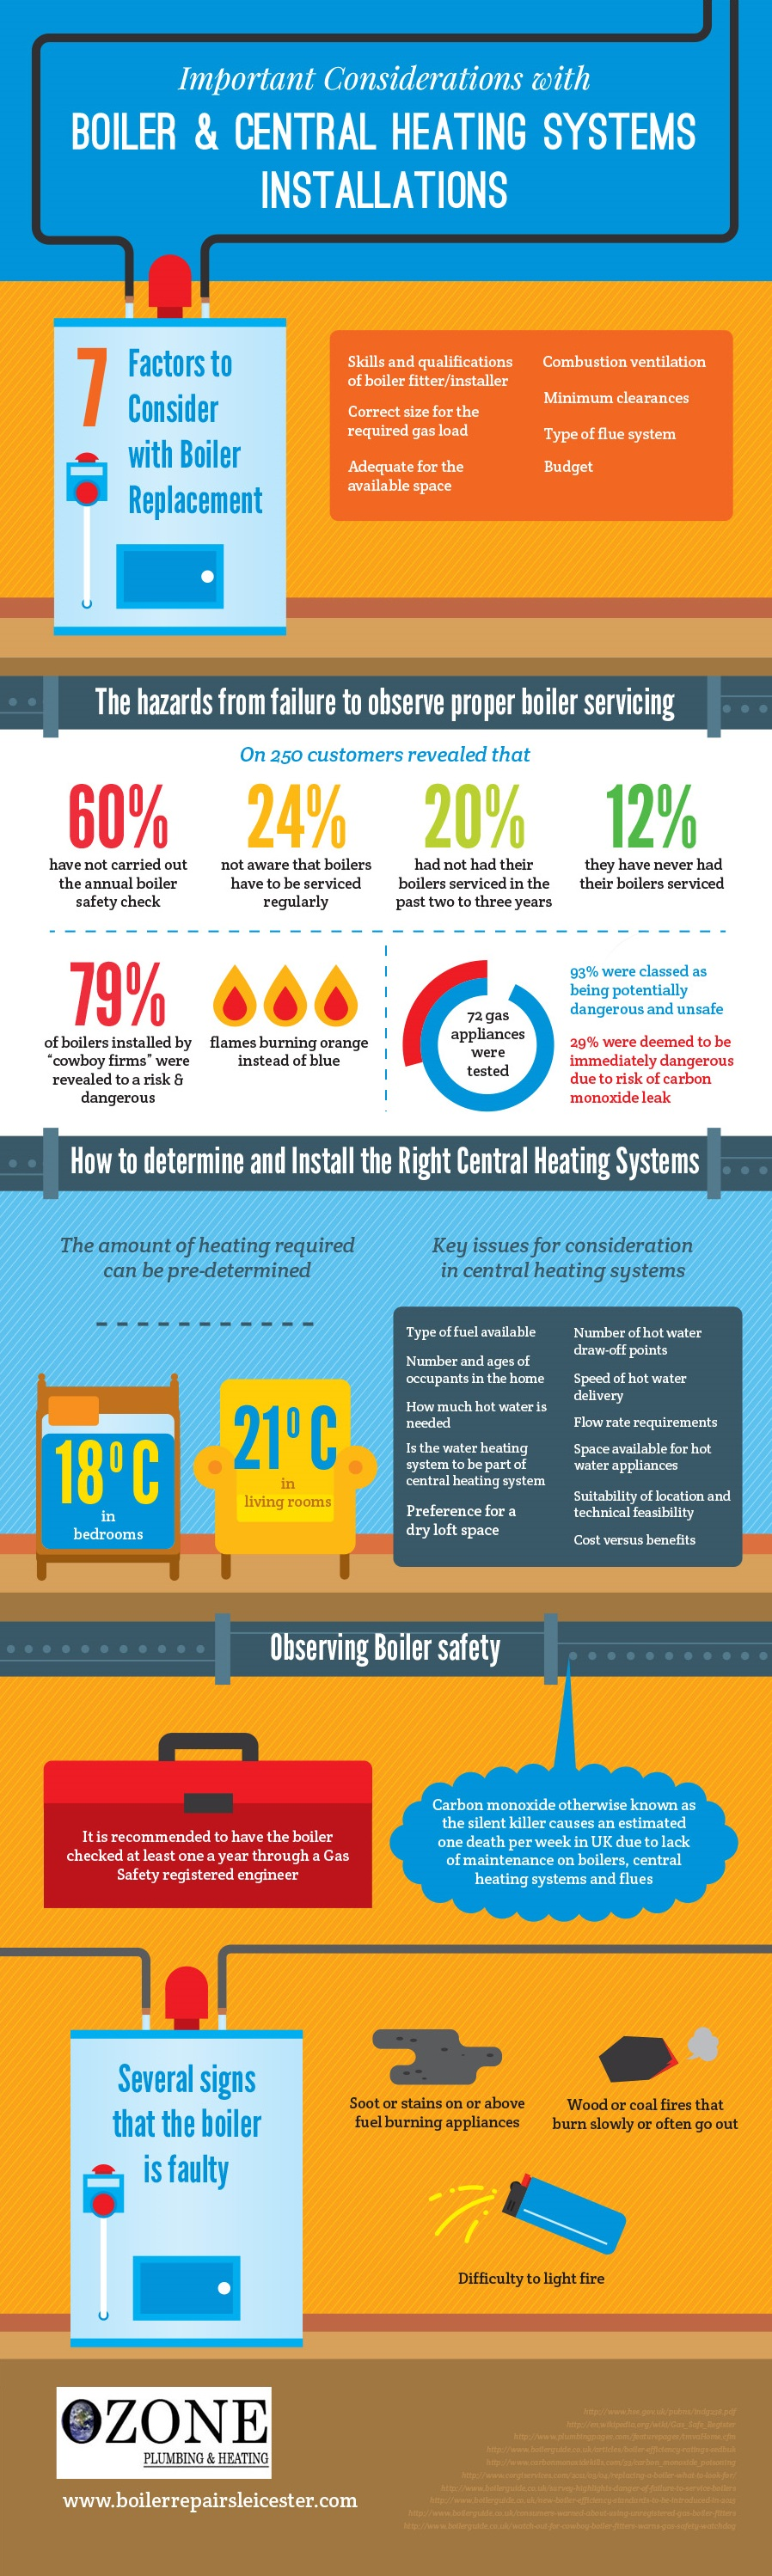 Important Considerations With Boiler and Central Heating Systems ...